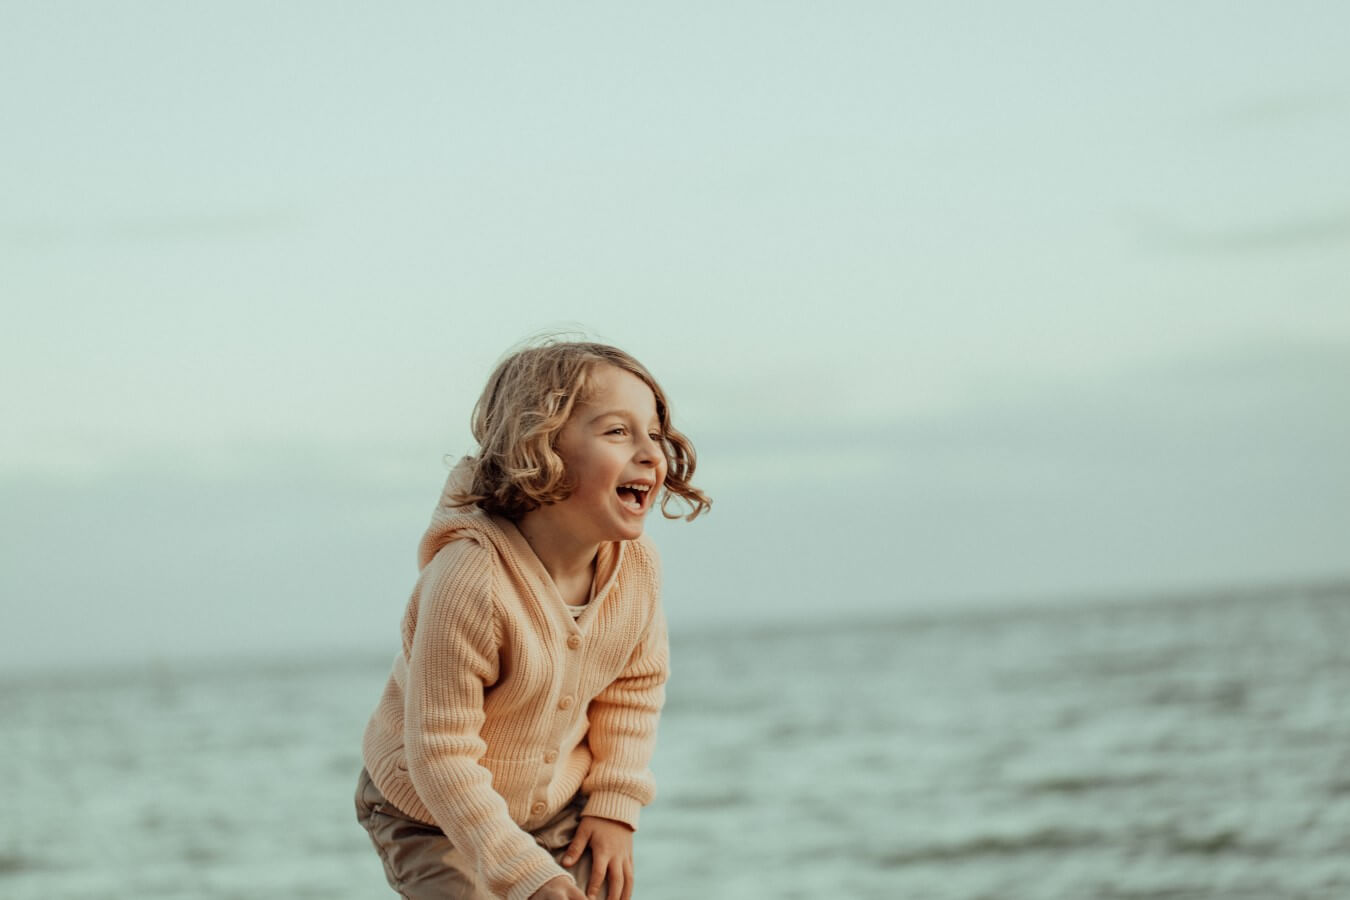 A young boy stands at the beach at Ricketts Point, laughing at something off camera. The water is in the background.